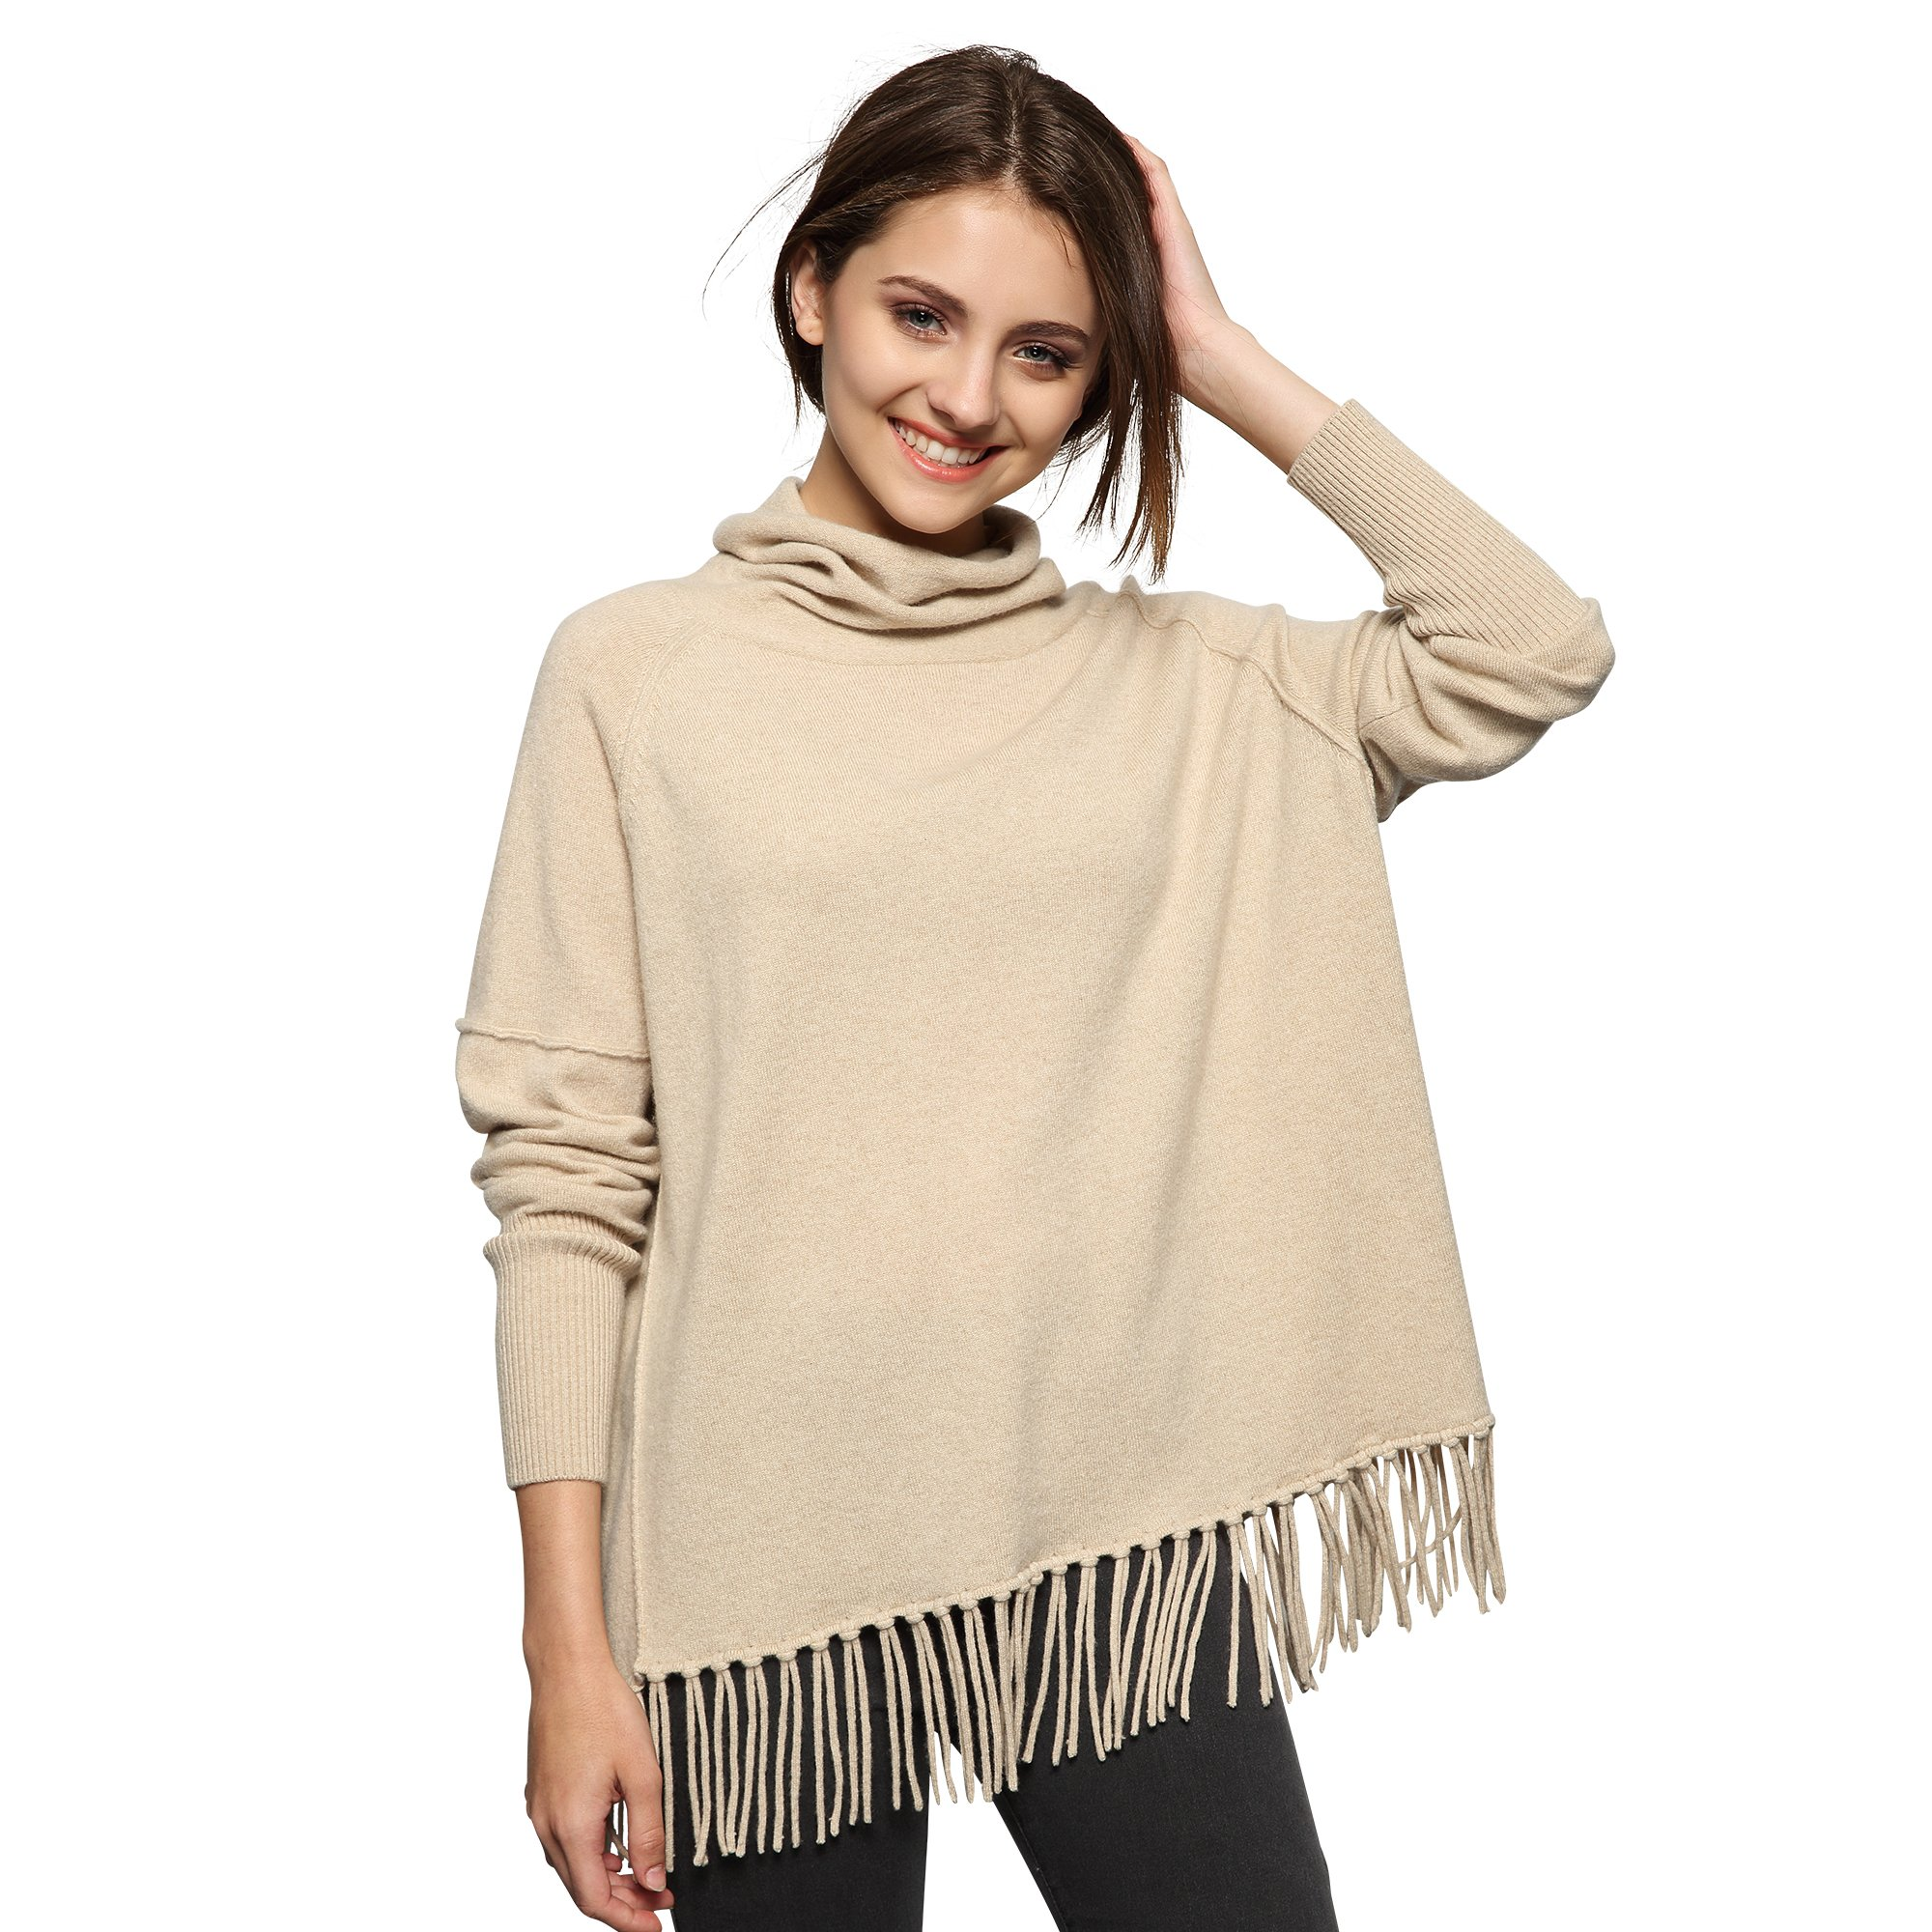 Chesslyre Loose Womens Cashmere Sweaters Plus Size, Relaxed Fit High Neck Ladies Cashmere Sweaters